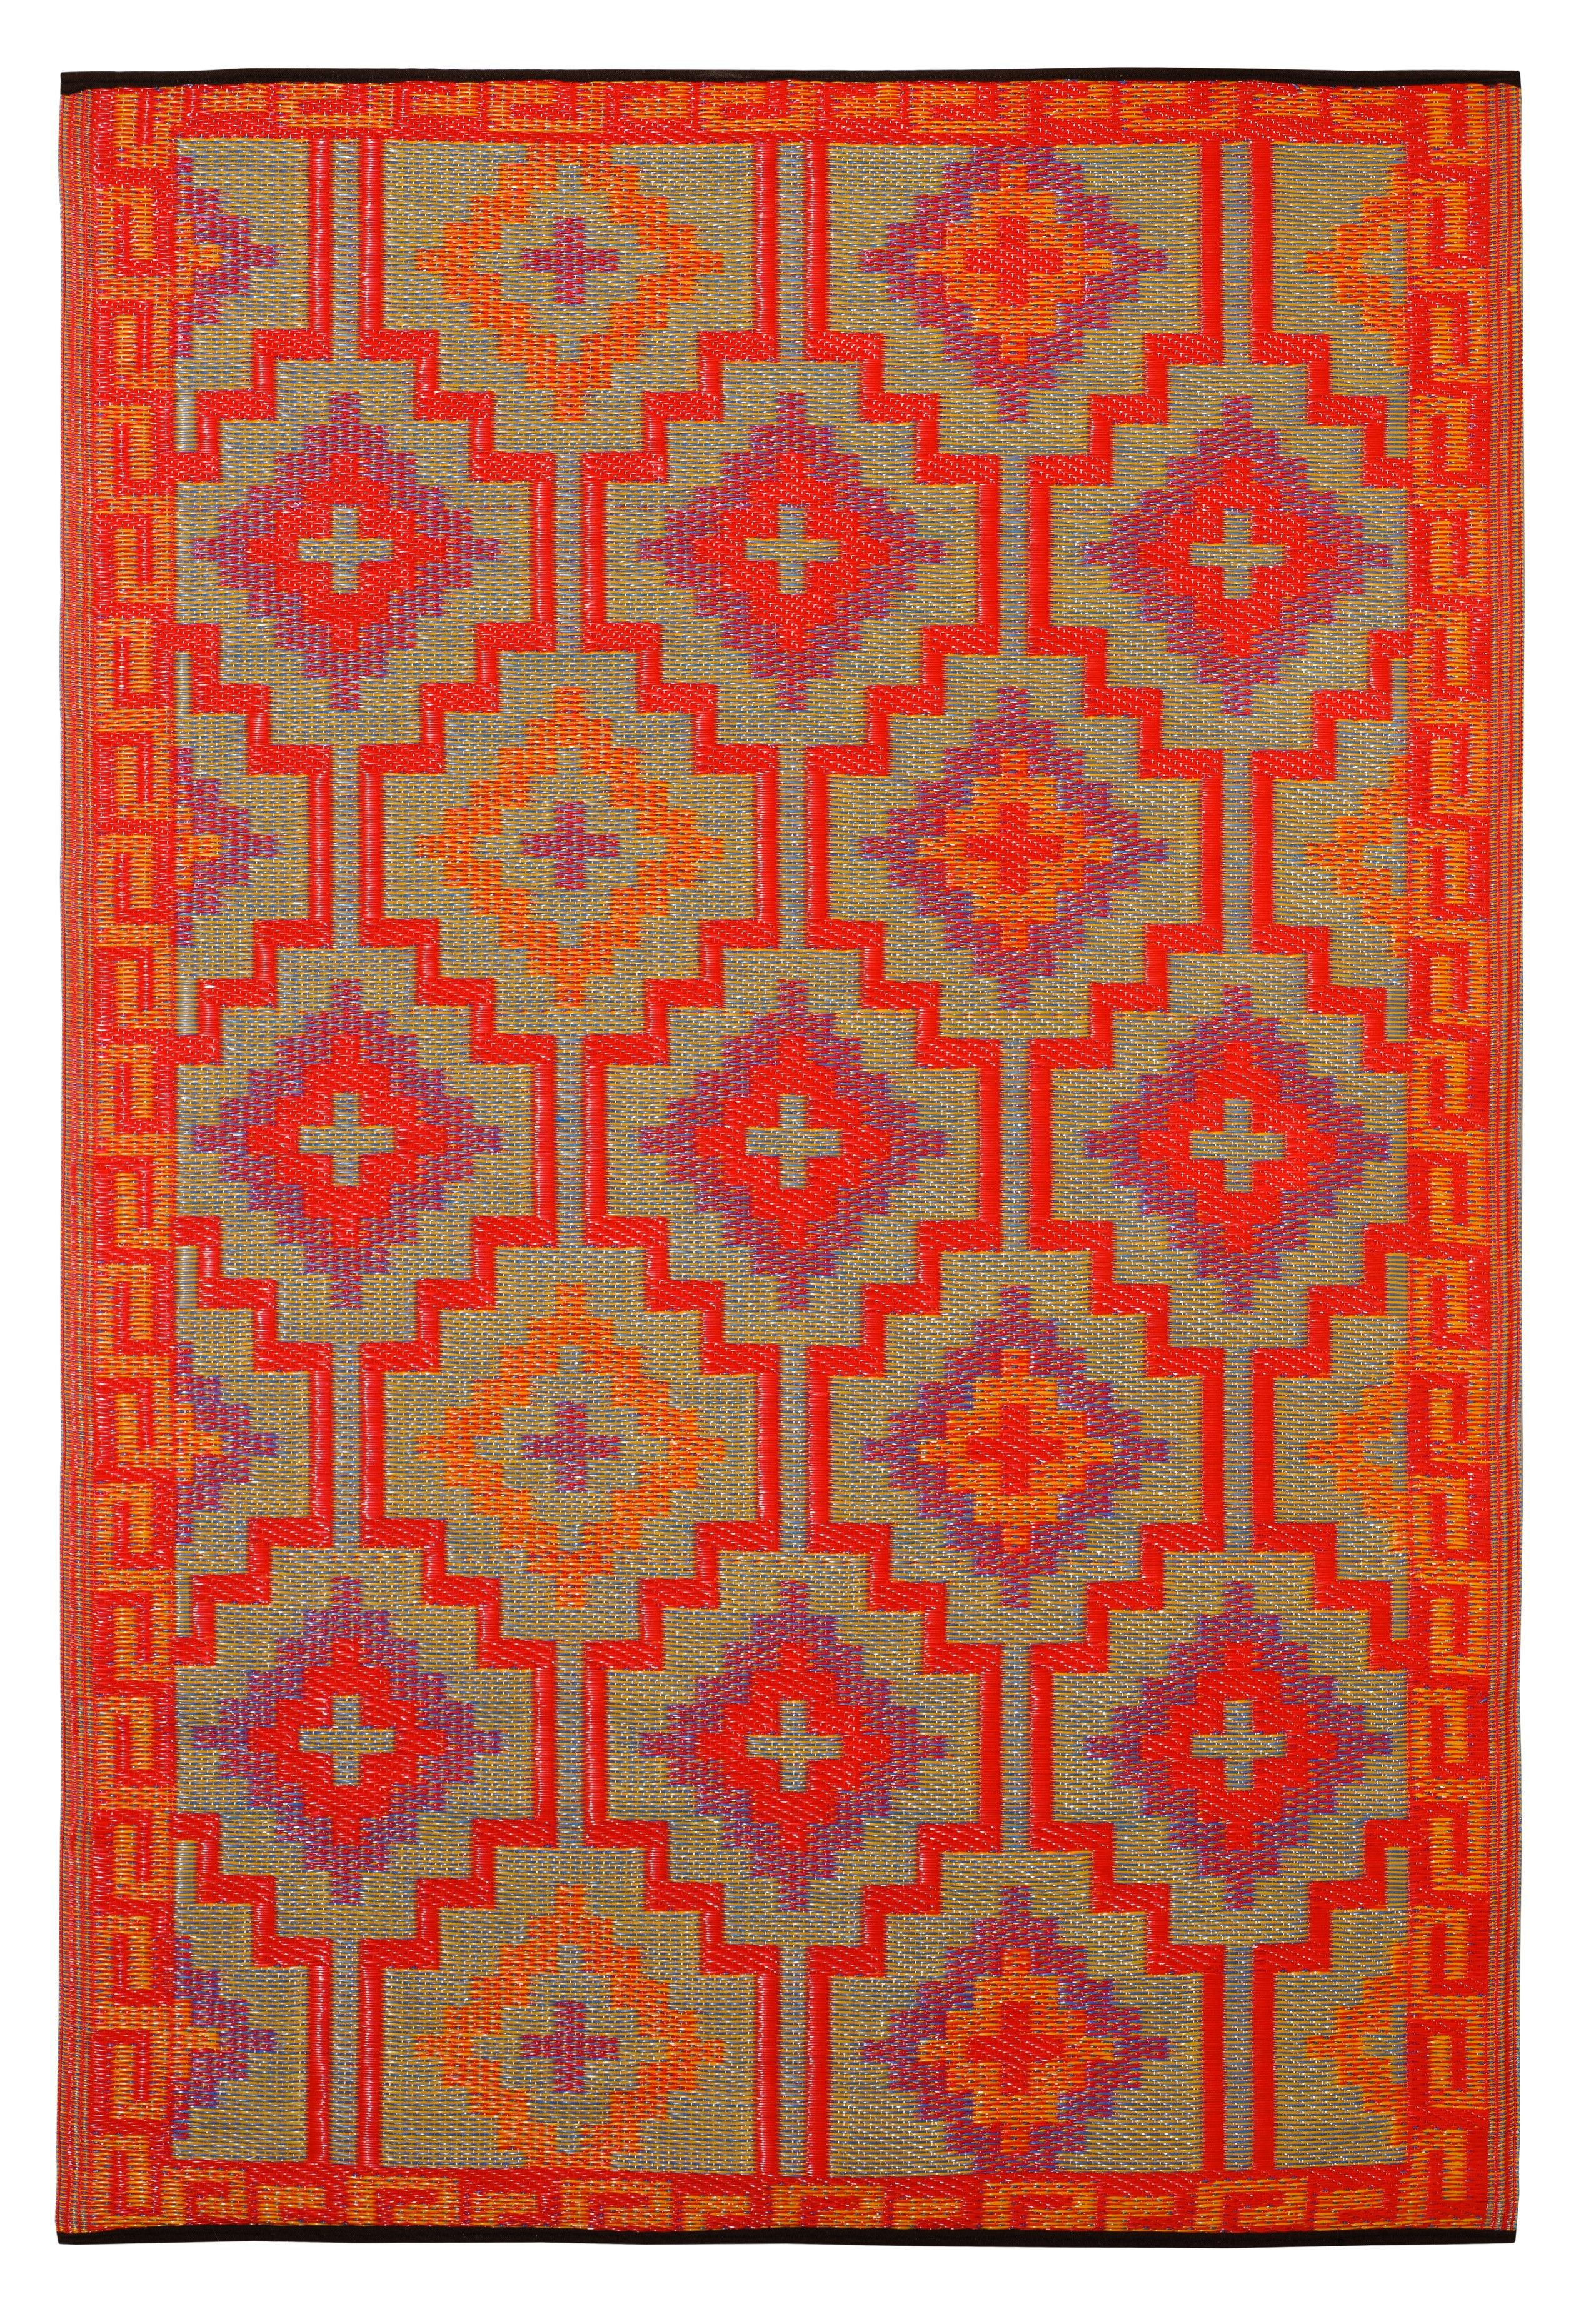 Lhasa Orage and violet outdoor/indoor rug made form recycled plastic. via Emily Henderson